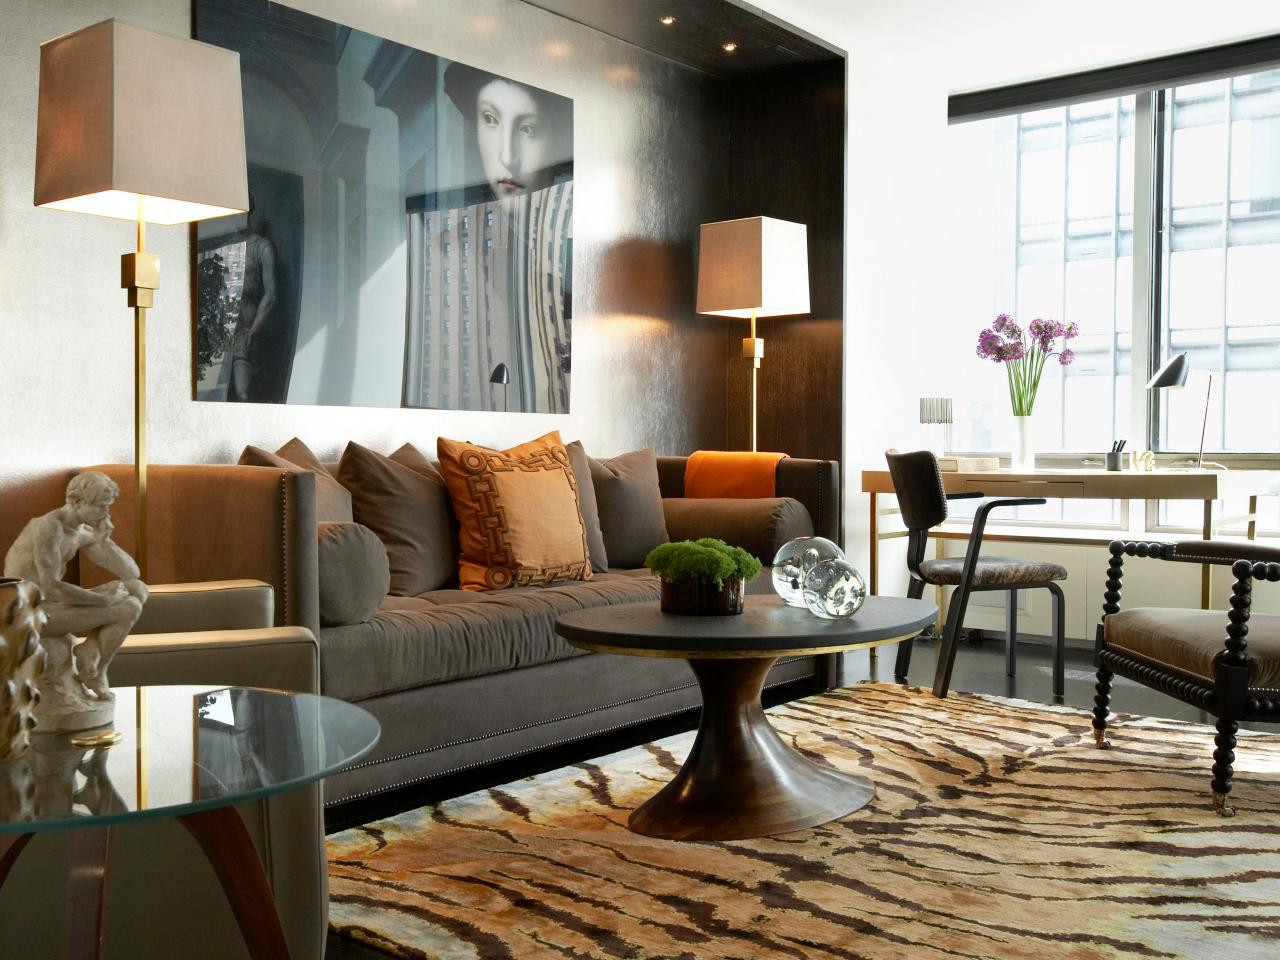 Best ideas about Living Room Rug Ideas . Save or Pin Tips to Place Rugs for Living Room Now.